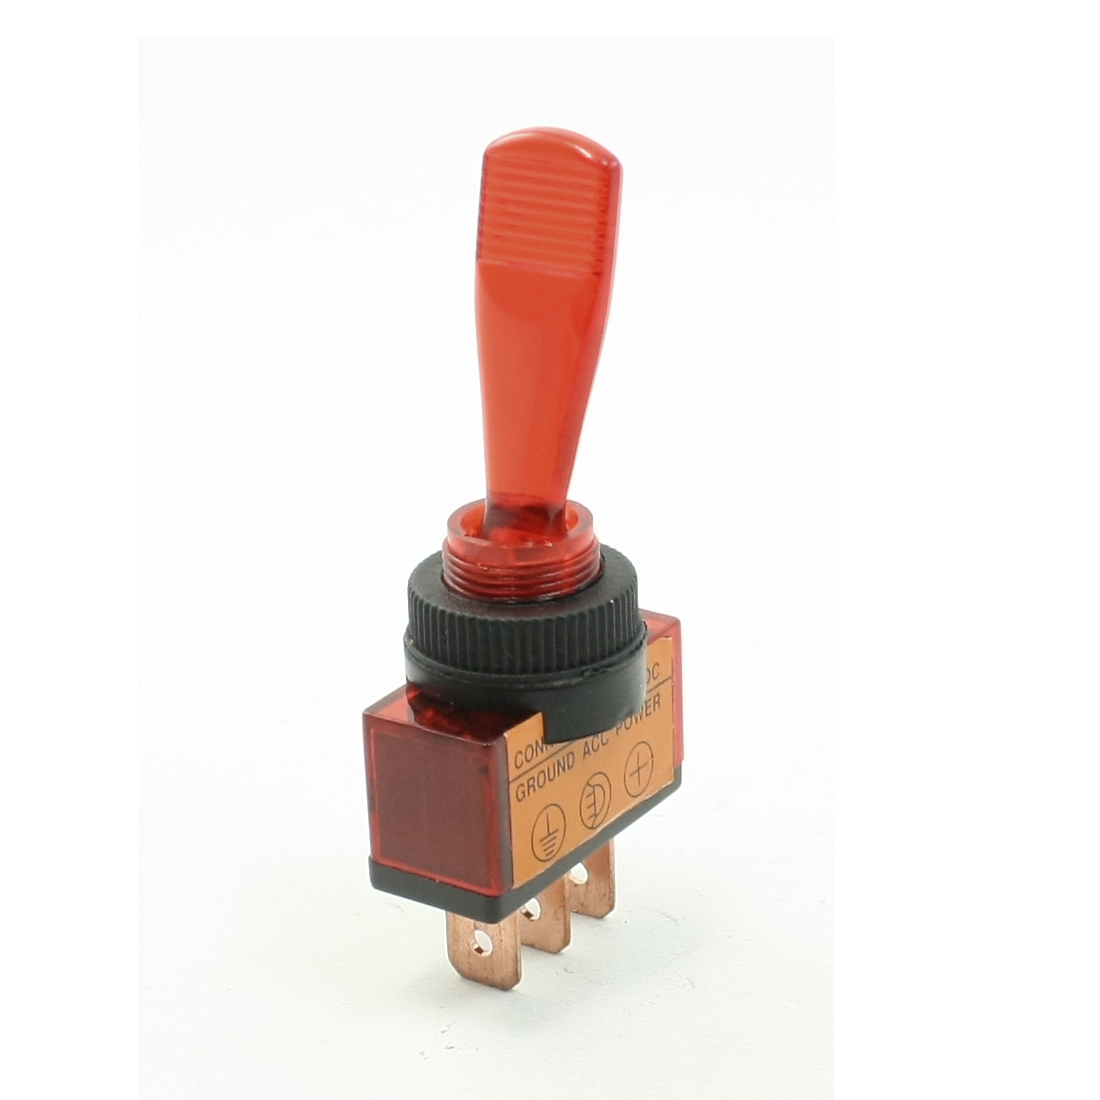 Red-Light-Pilot-Lamp-SPST-ON-OFF-2-Position-3P-Car-Toggle-Switch-DC-12V-20A